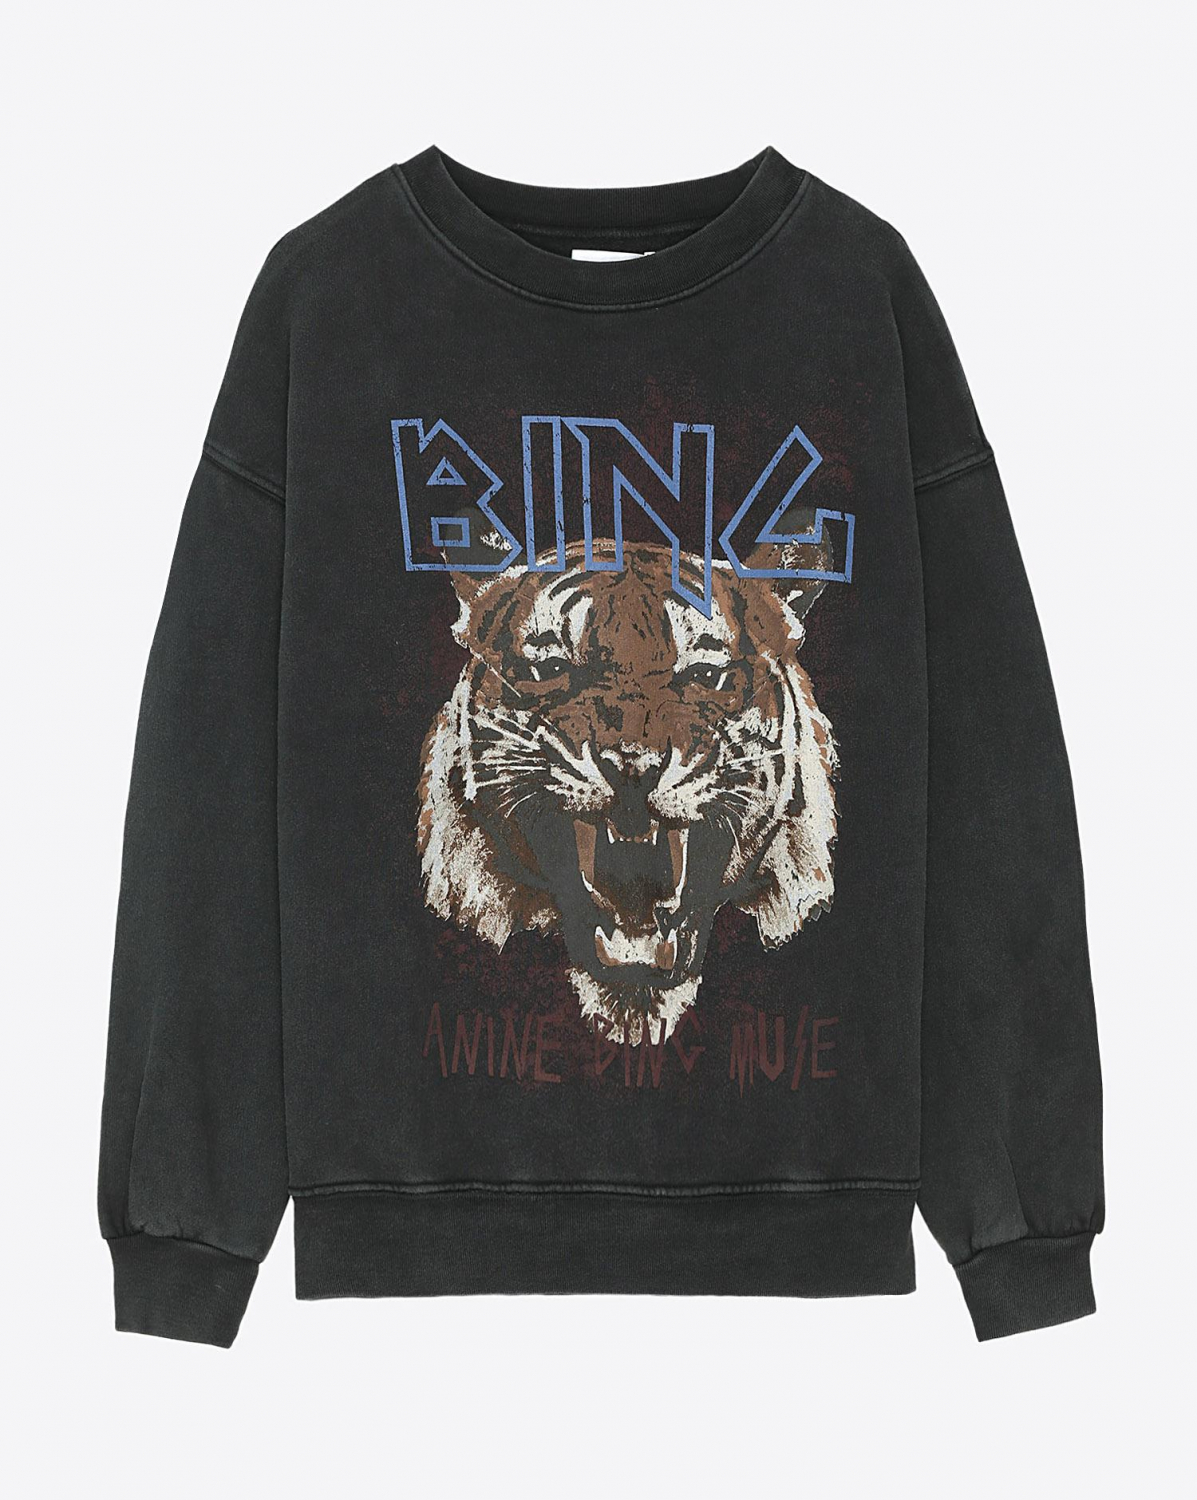 Anine Bing Permanent Tiger Sweatshirt - Black